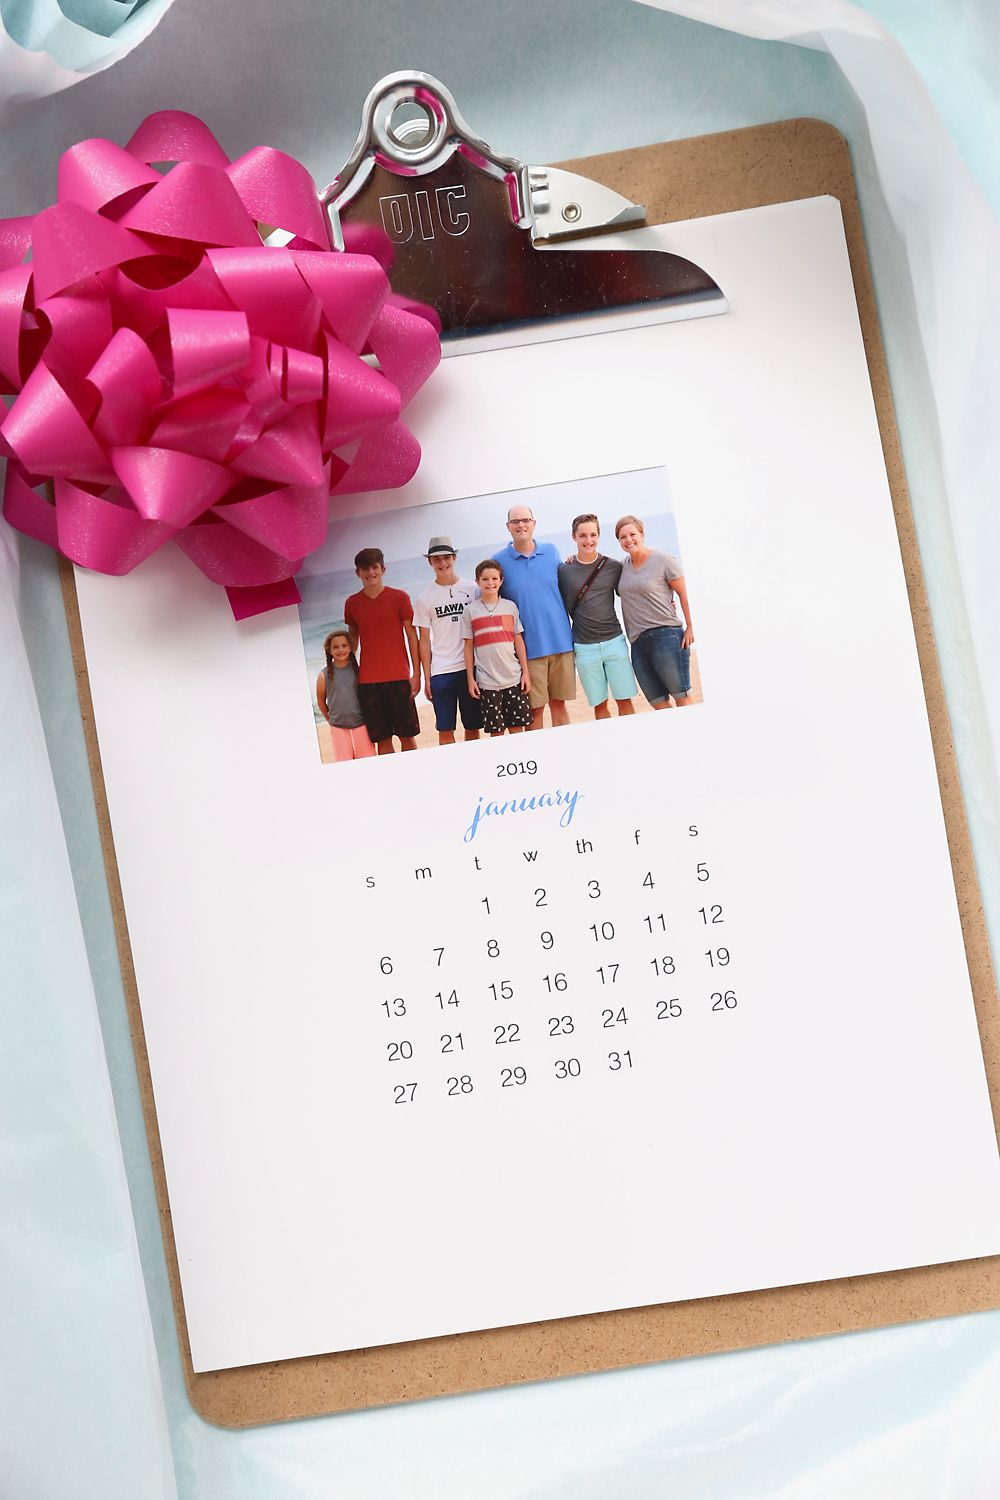 Make A Personalized 2020 Photo Calendar Free Templates It S Always Autumn Diy Calendar Photo Diy Gifts For Friends Homemade Advent Calendars